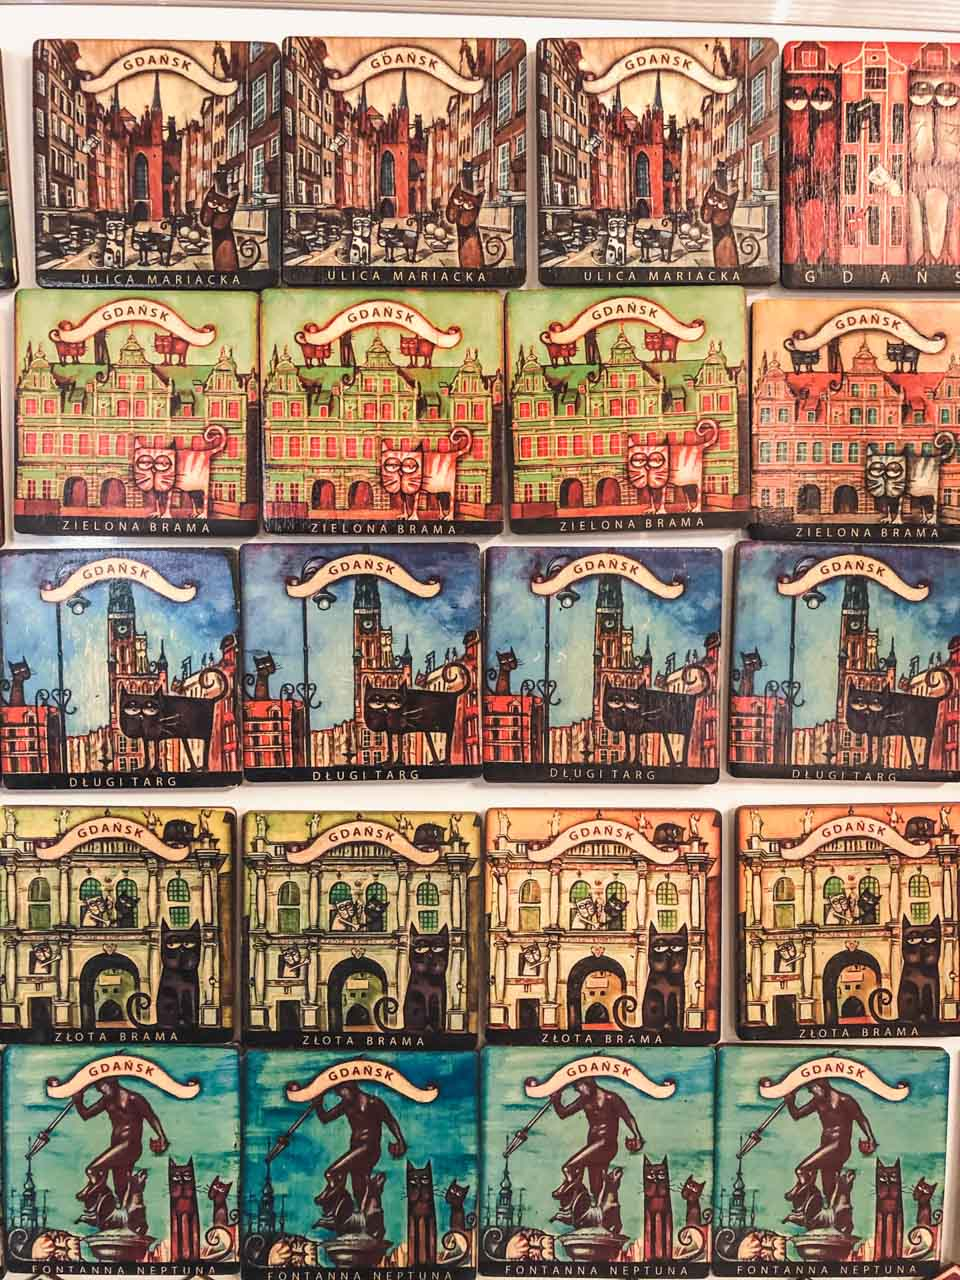 Fridge magnets at the Arts and Crafts Market in Gdańsk